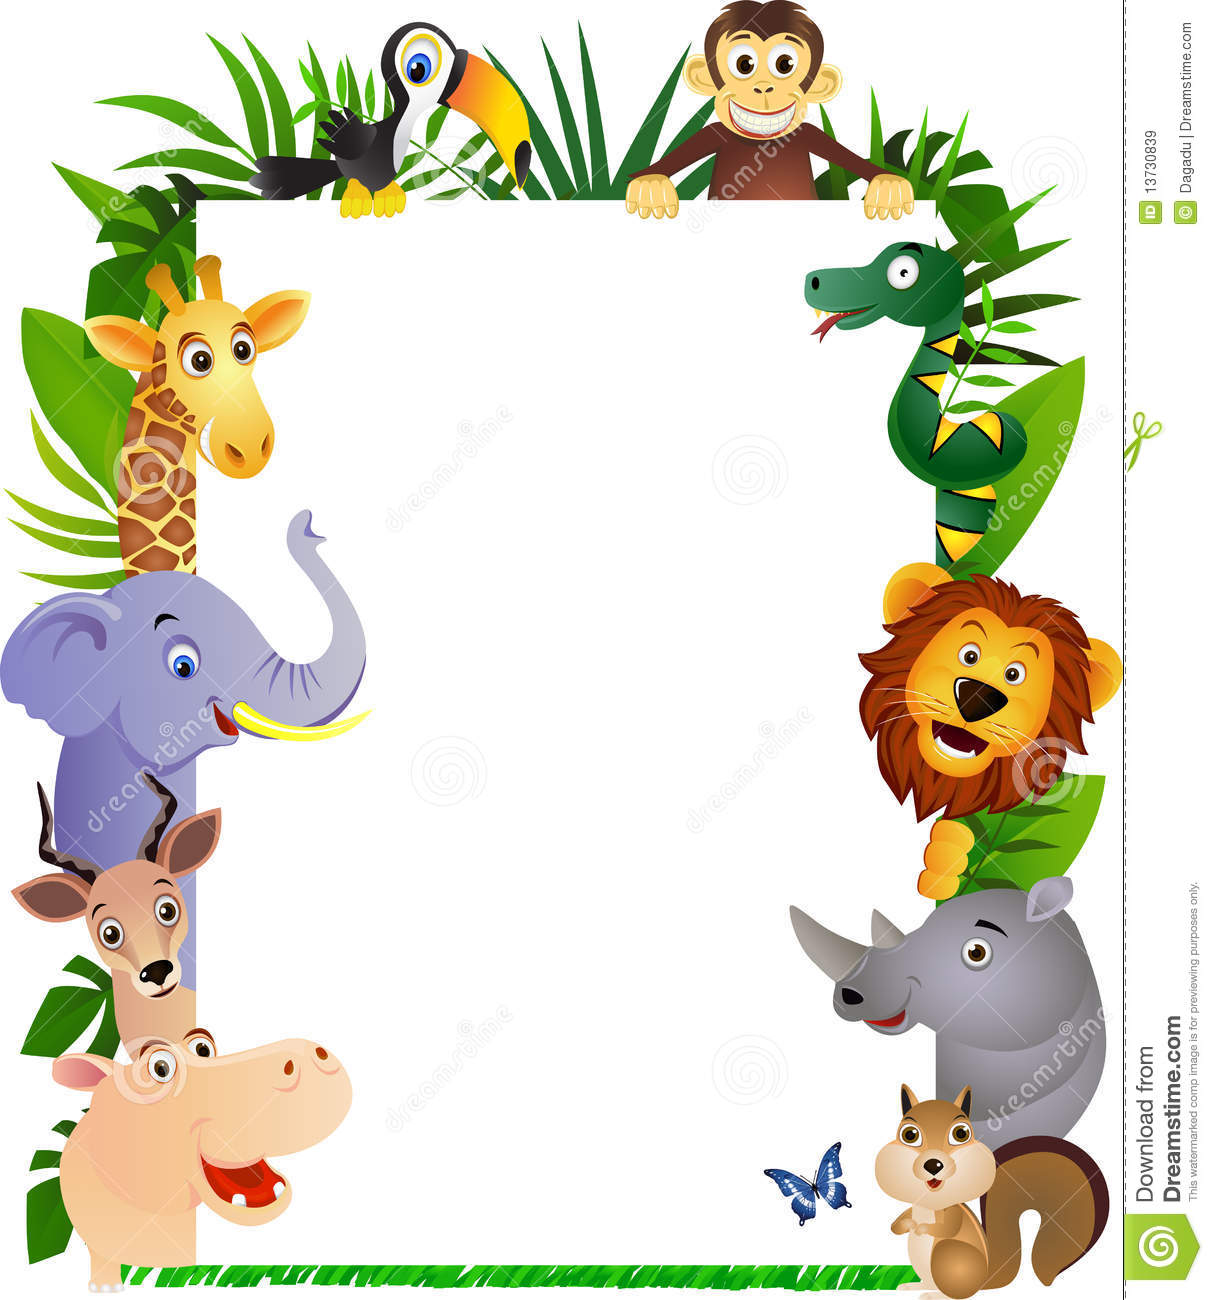 Royalty Free Stock Images: Animal cartoon and white blank. Image ...